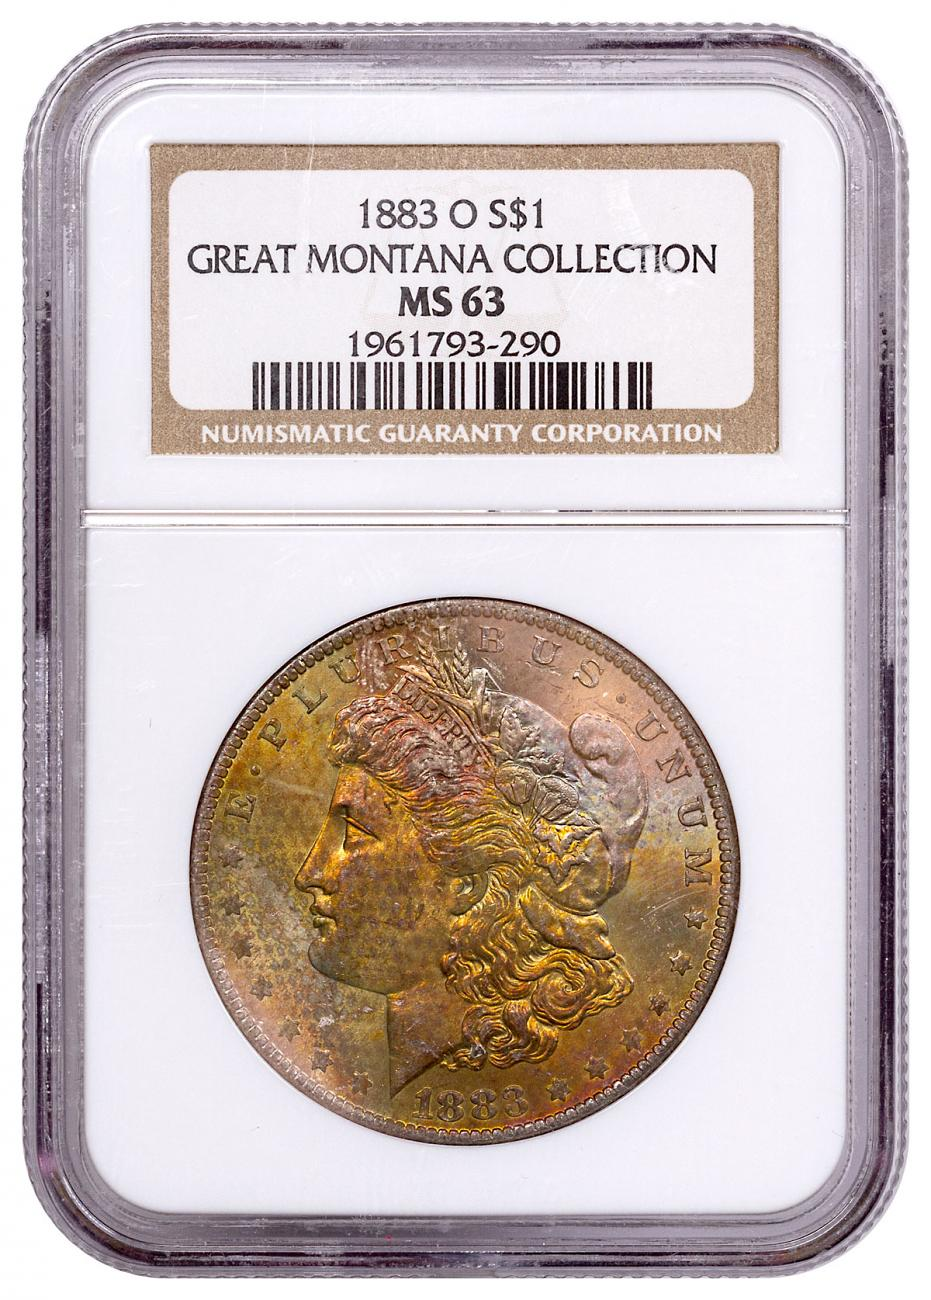 1883-O Morgan Silver Dollar From the Great Montana Collection NGC MS63 Toned CPCR 3290